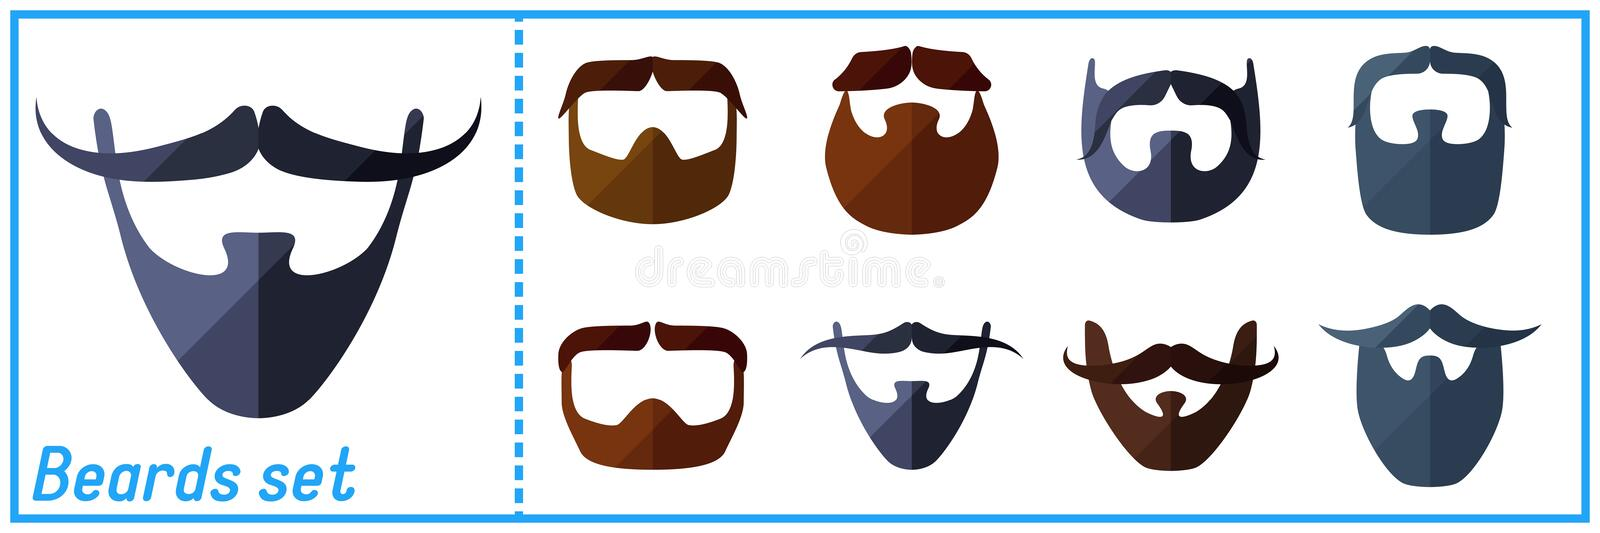 Beard flat icons set with hipster mustache vector illustration